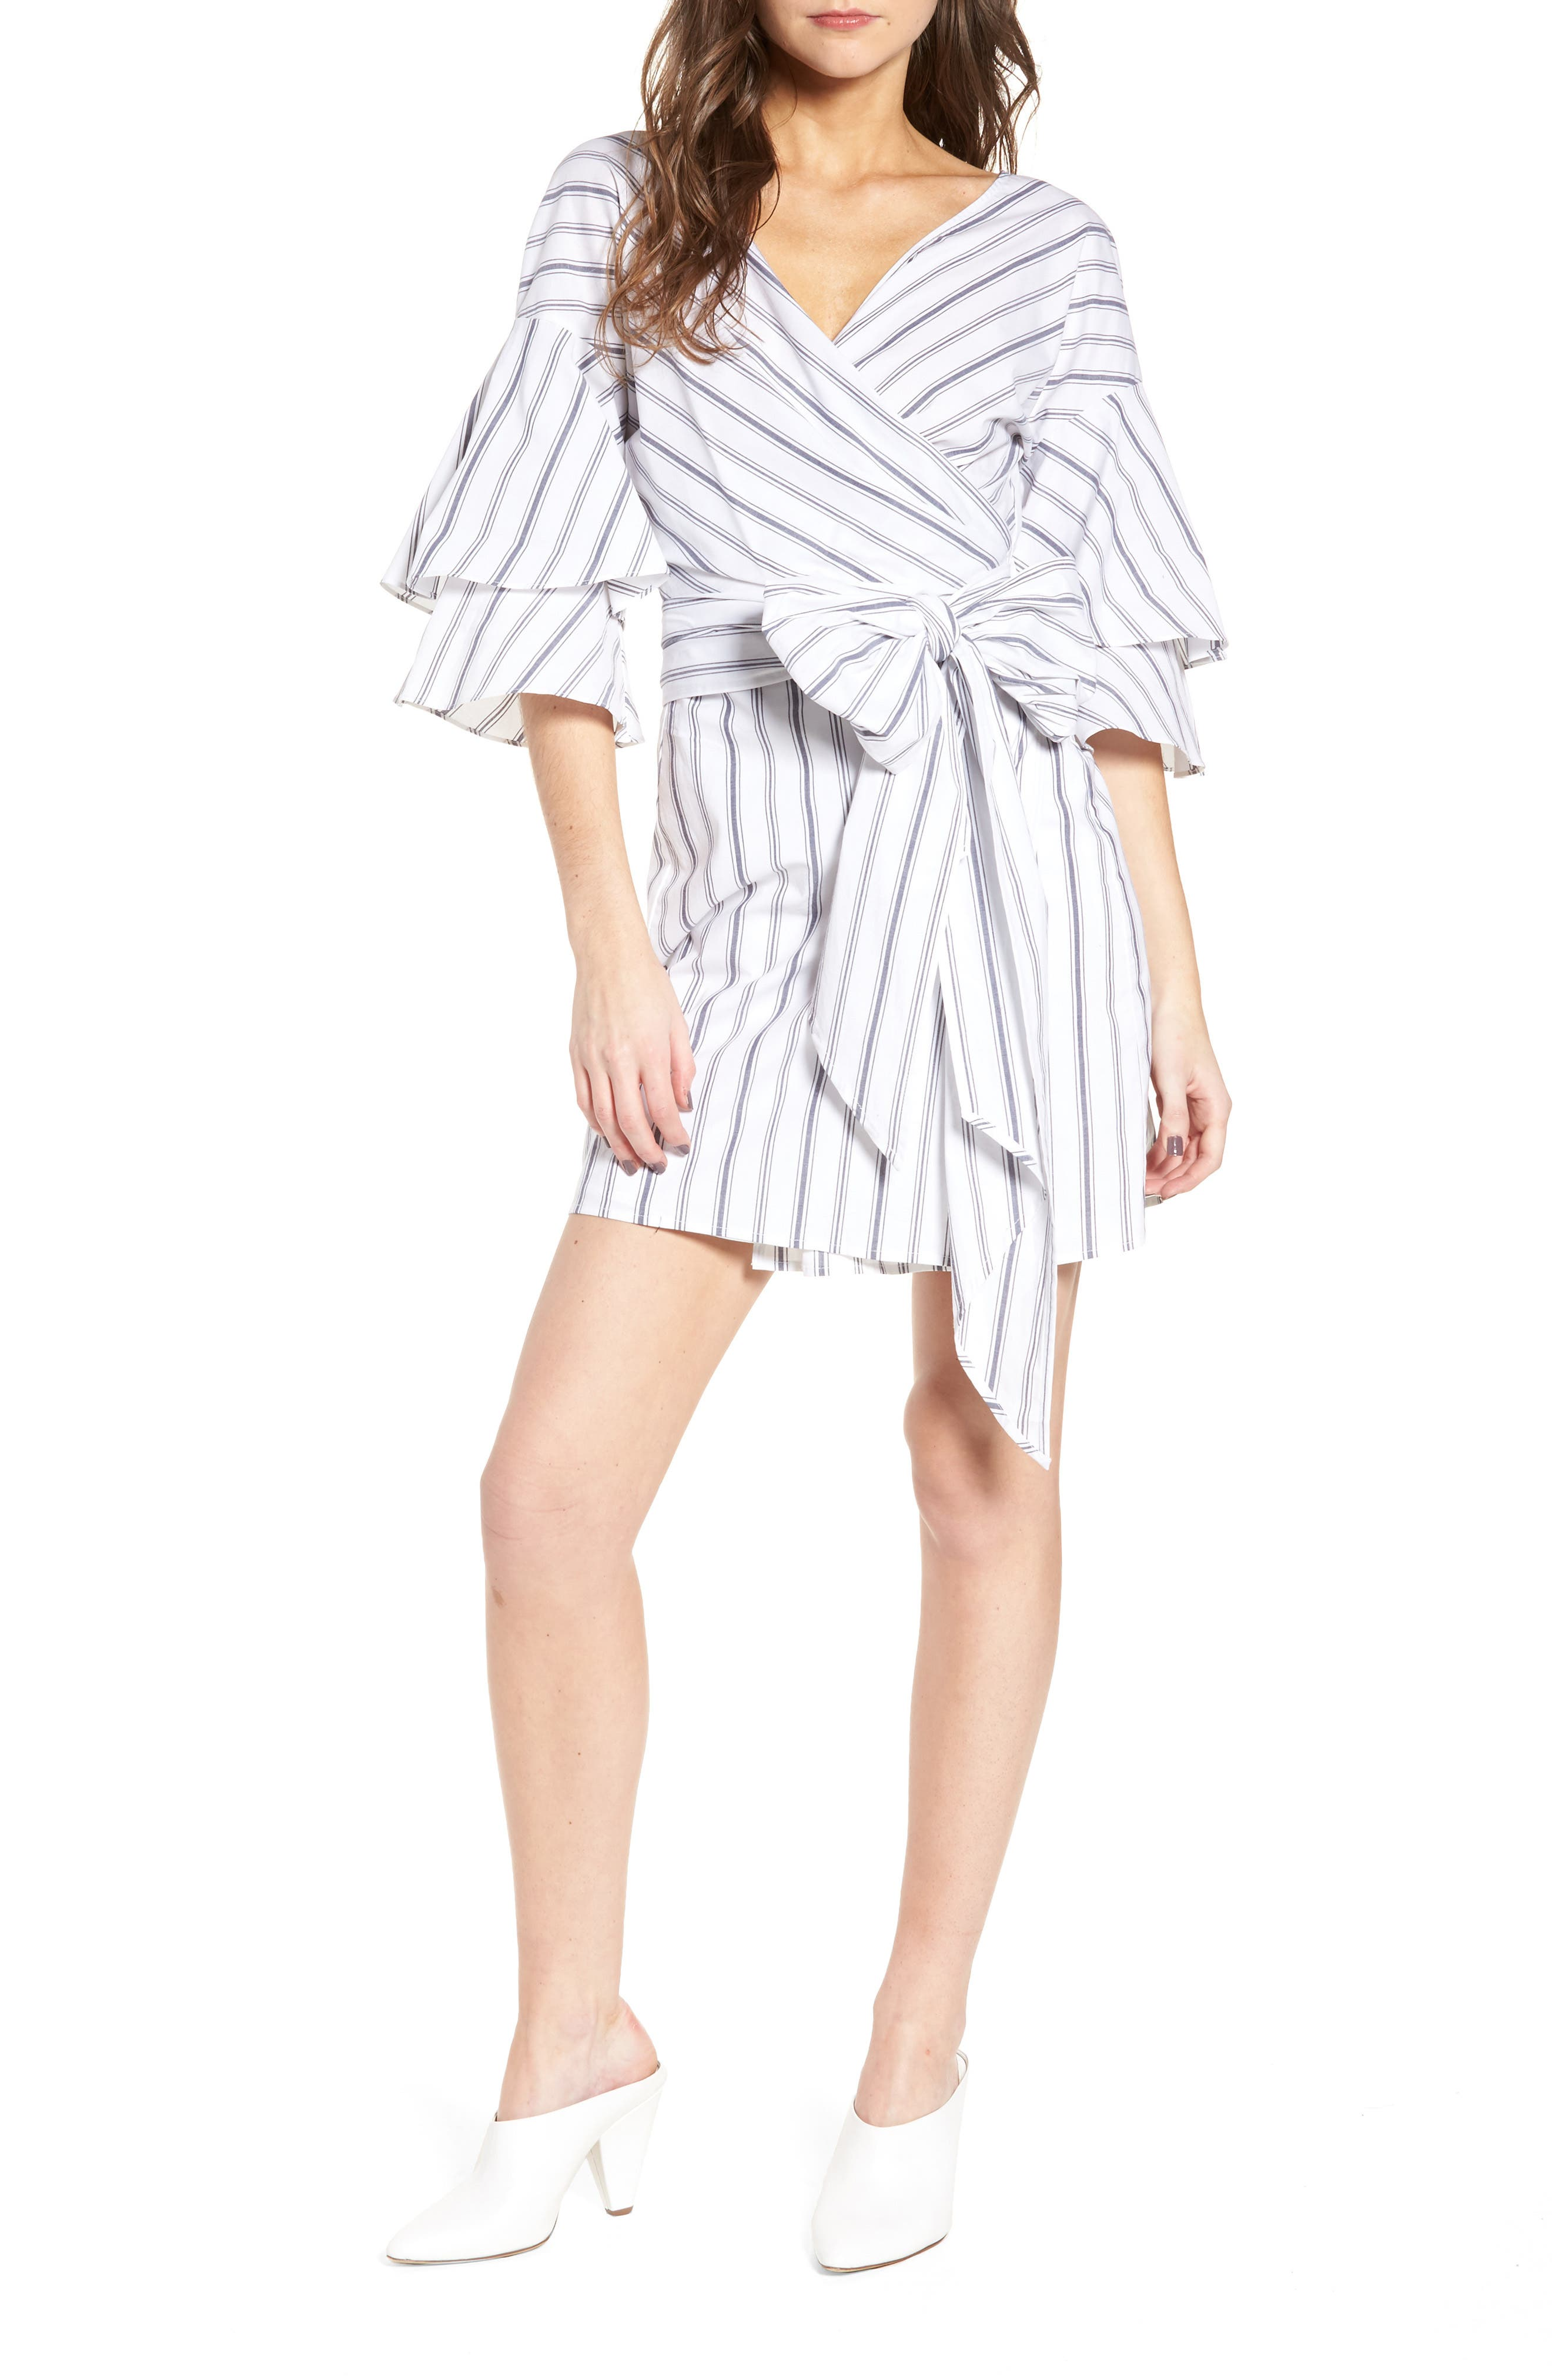 Beckett Wrap Dress,                         Main,                         color, Ivory/ Navy Stripe